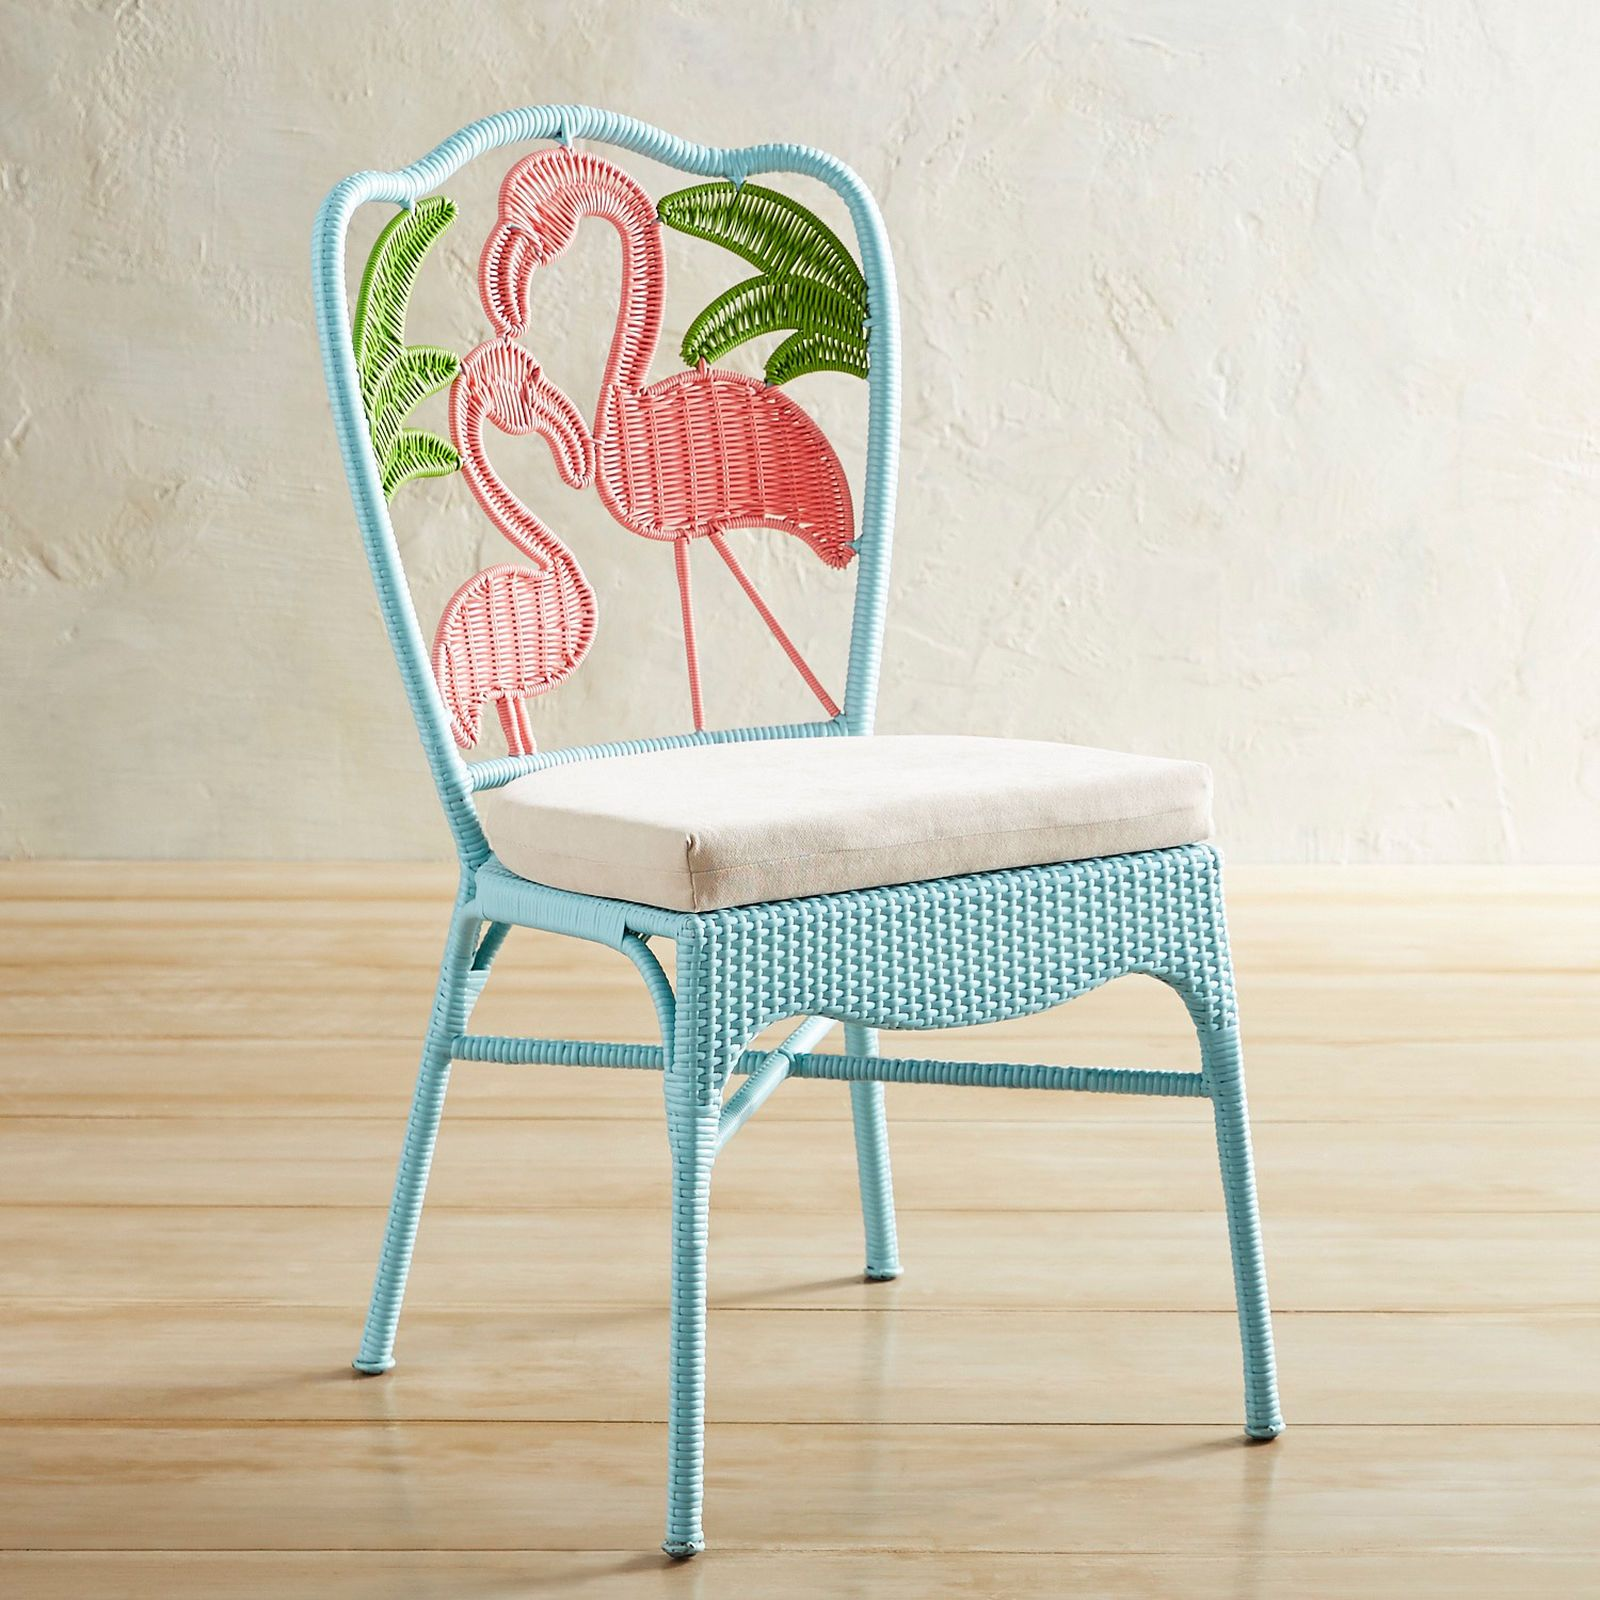 Pull Up Our Flamingo Chair And Get Comfortable, Whether Youre